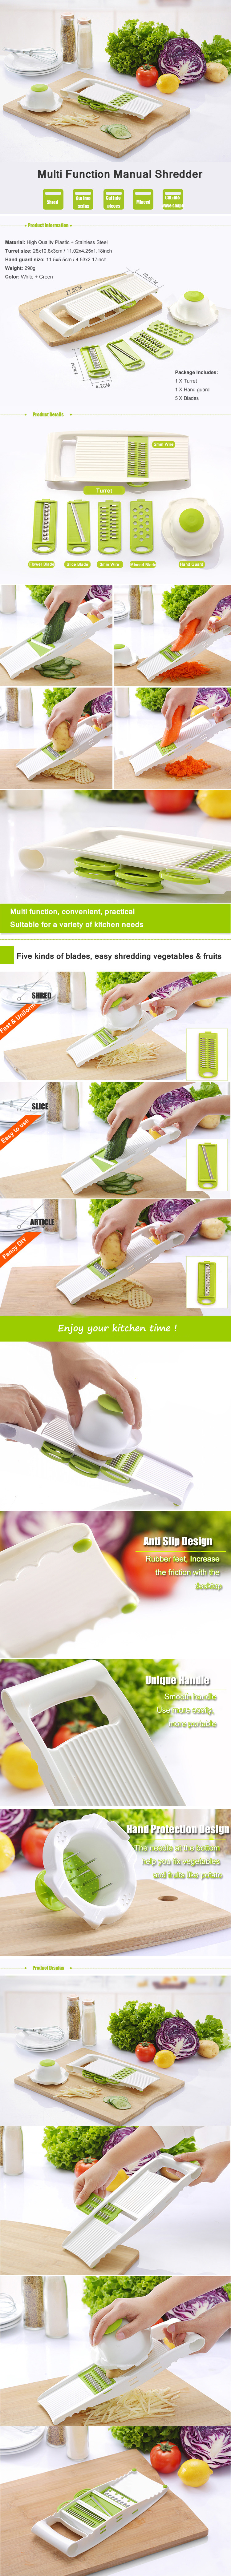 5Pcs/Set Fruit Vegetable Shredder Slicer Shredding Device Multifunction Manual Potato Cutter Vegetable Cutter